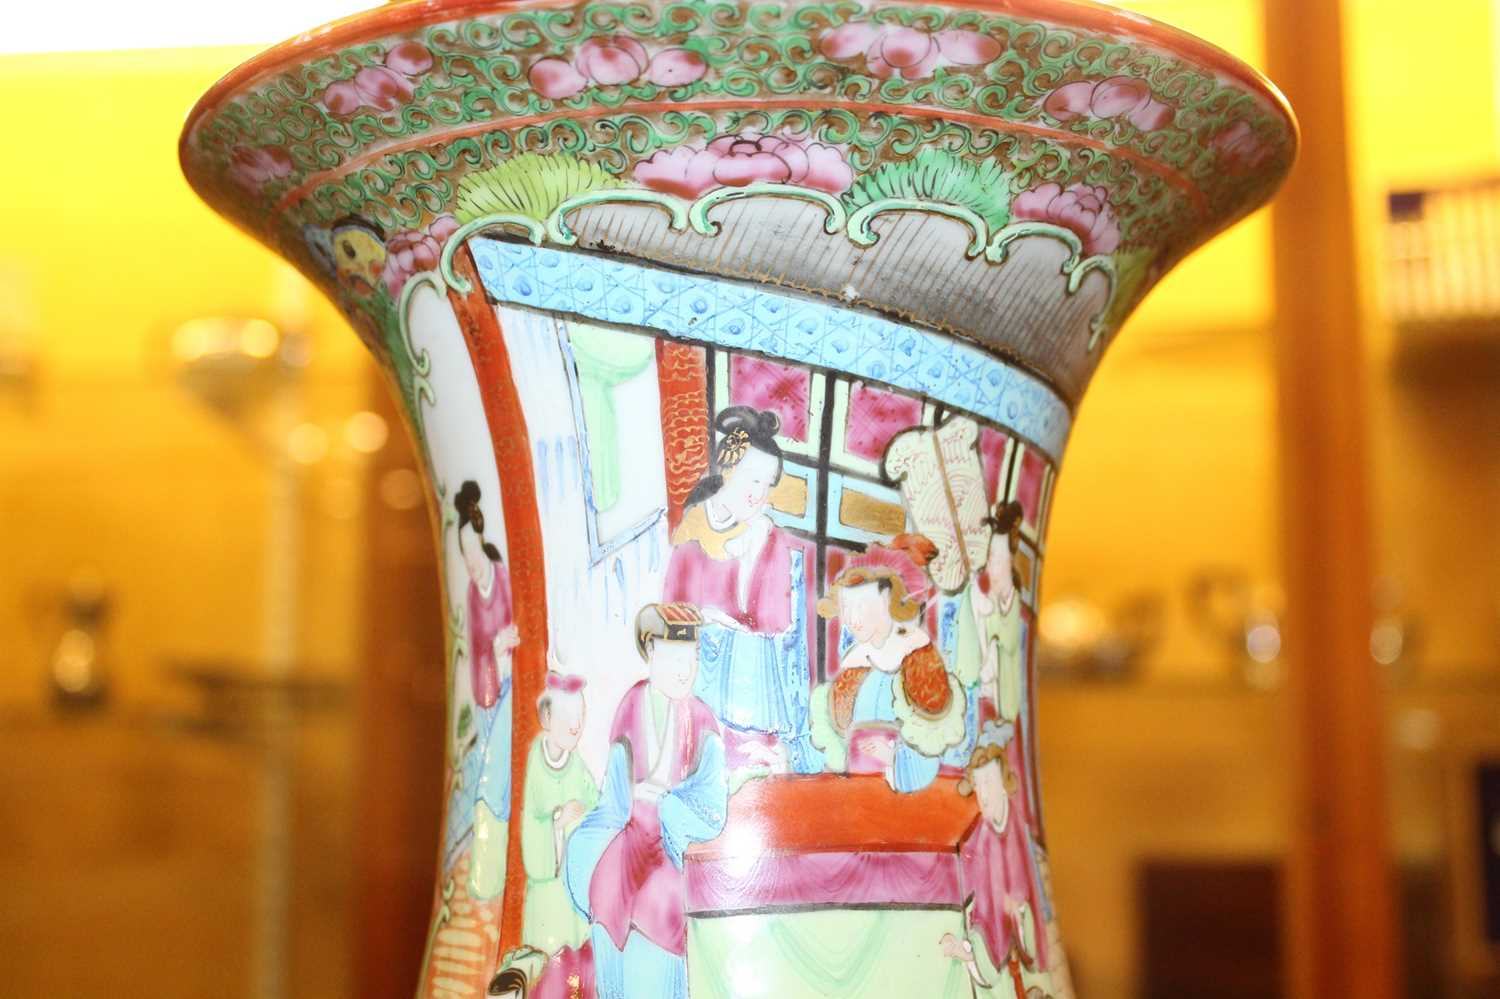 A 19th century Chinese Canton famille rose vase, enamel decorated with ceremonial figure scenes - Image 14 of 18